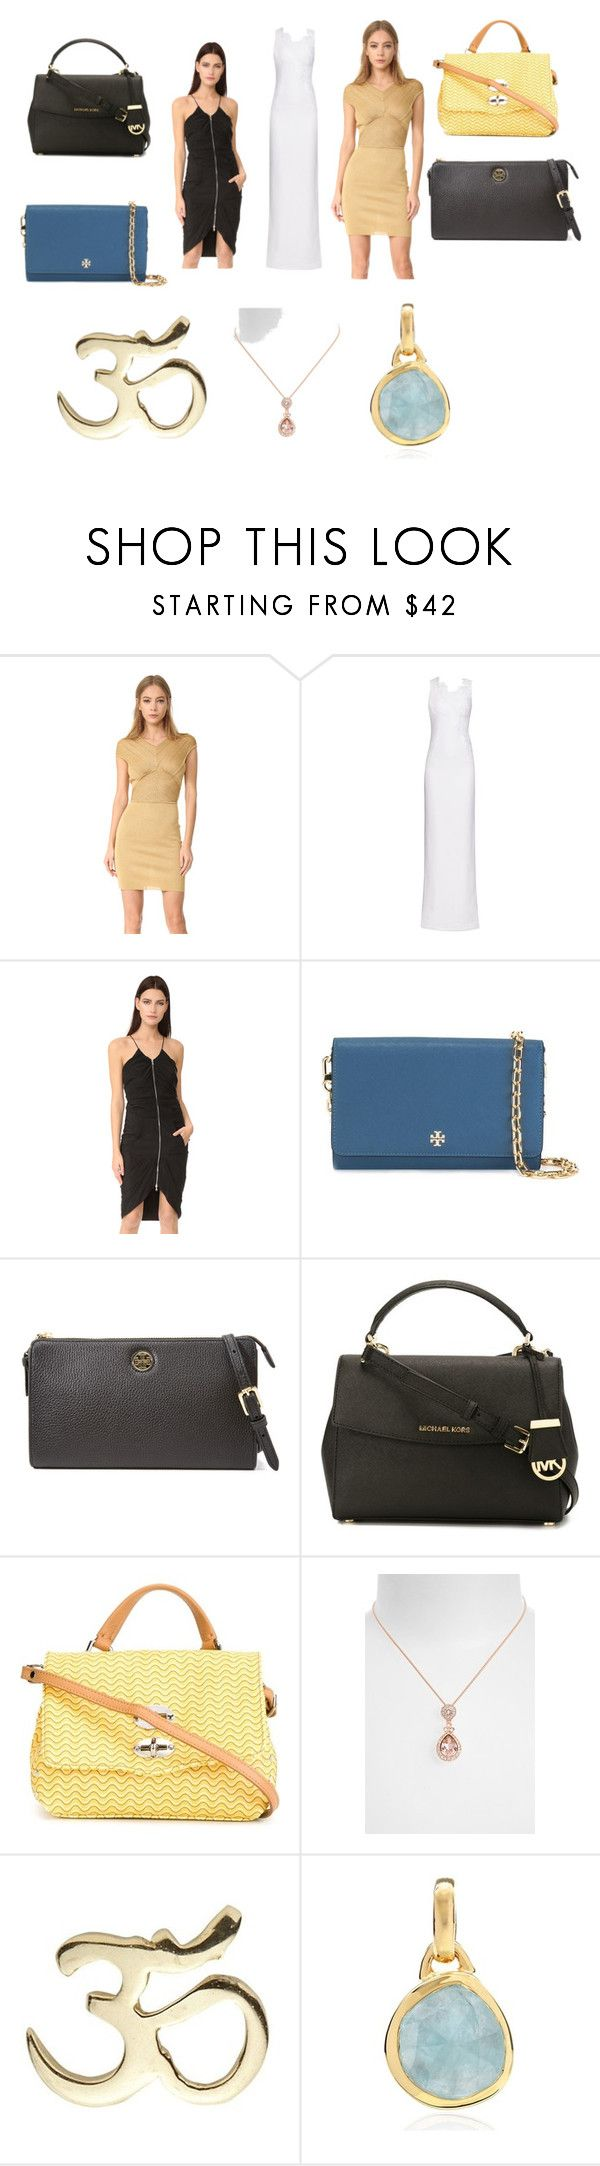 """""""Spring outfit"""" by jamuna-kaalla ❤ liked on Polyvore featuring Antonio Berardi, Moschino, Tory Burch, MICHAEL Michael Kors, Zanellato, Givenchy, Loquet, Monica Vinader and vintage"""